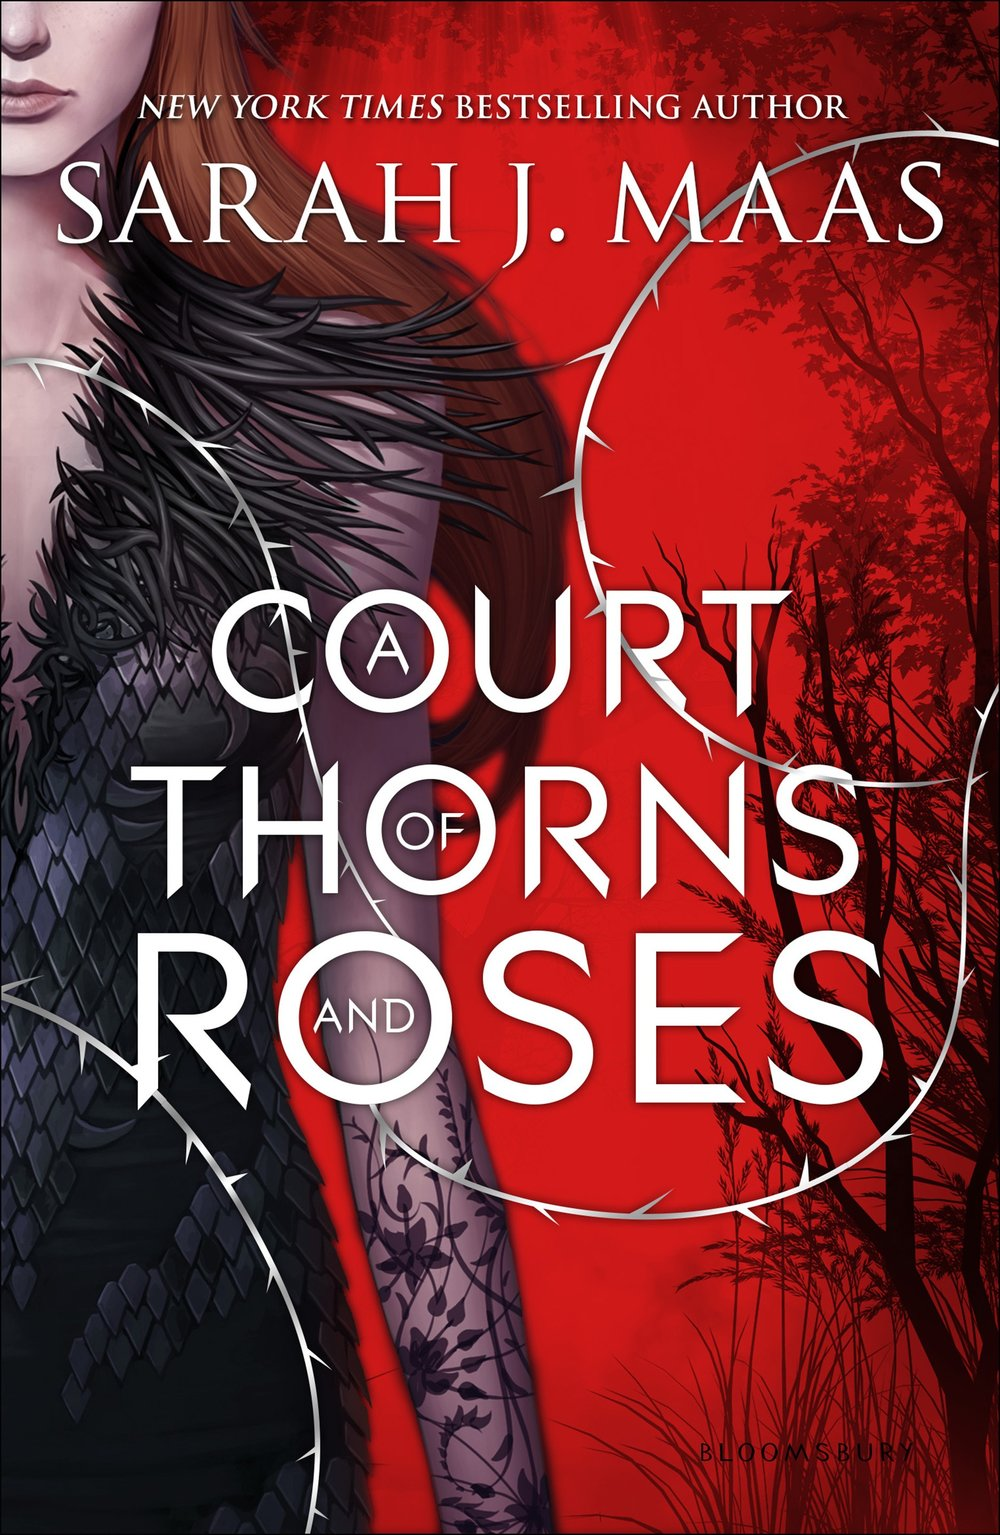 A Court of Thorns and Roses , by Sarah J. Maas